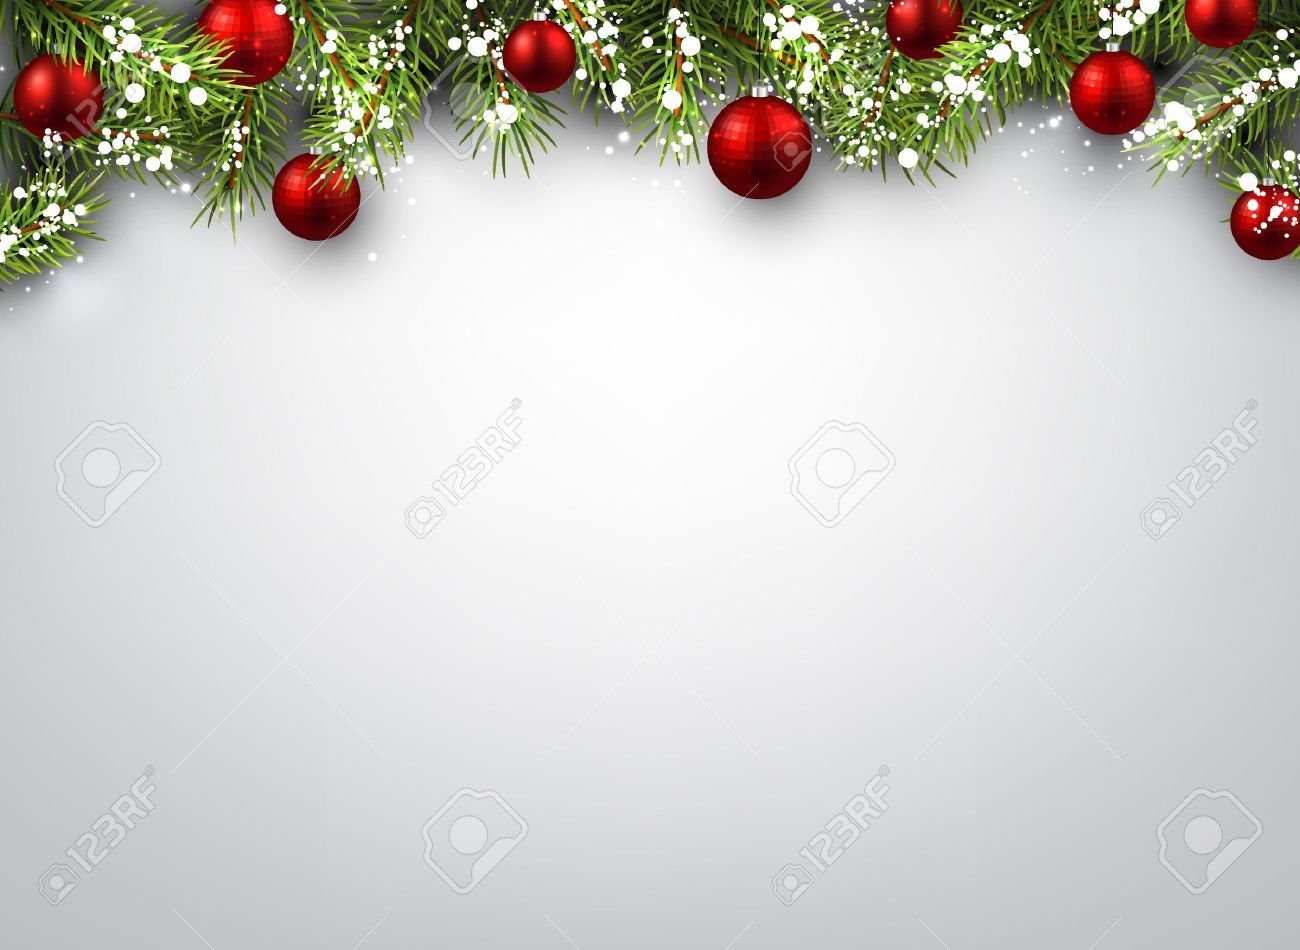 Christmas Background With Fir Branches And Red Balls Stock Vector